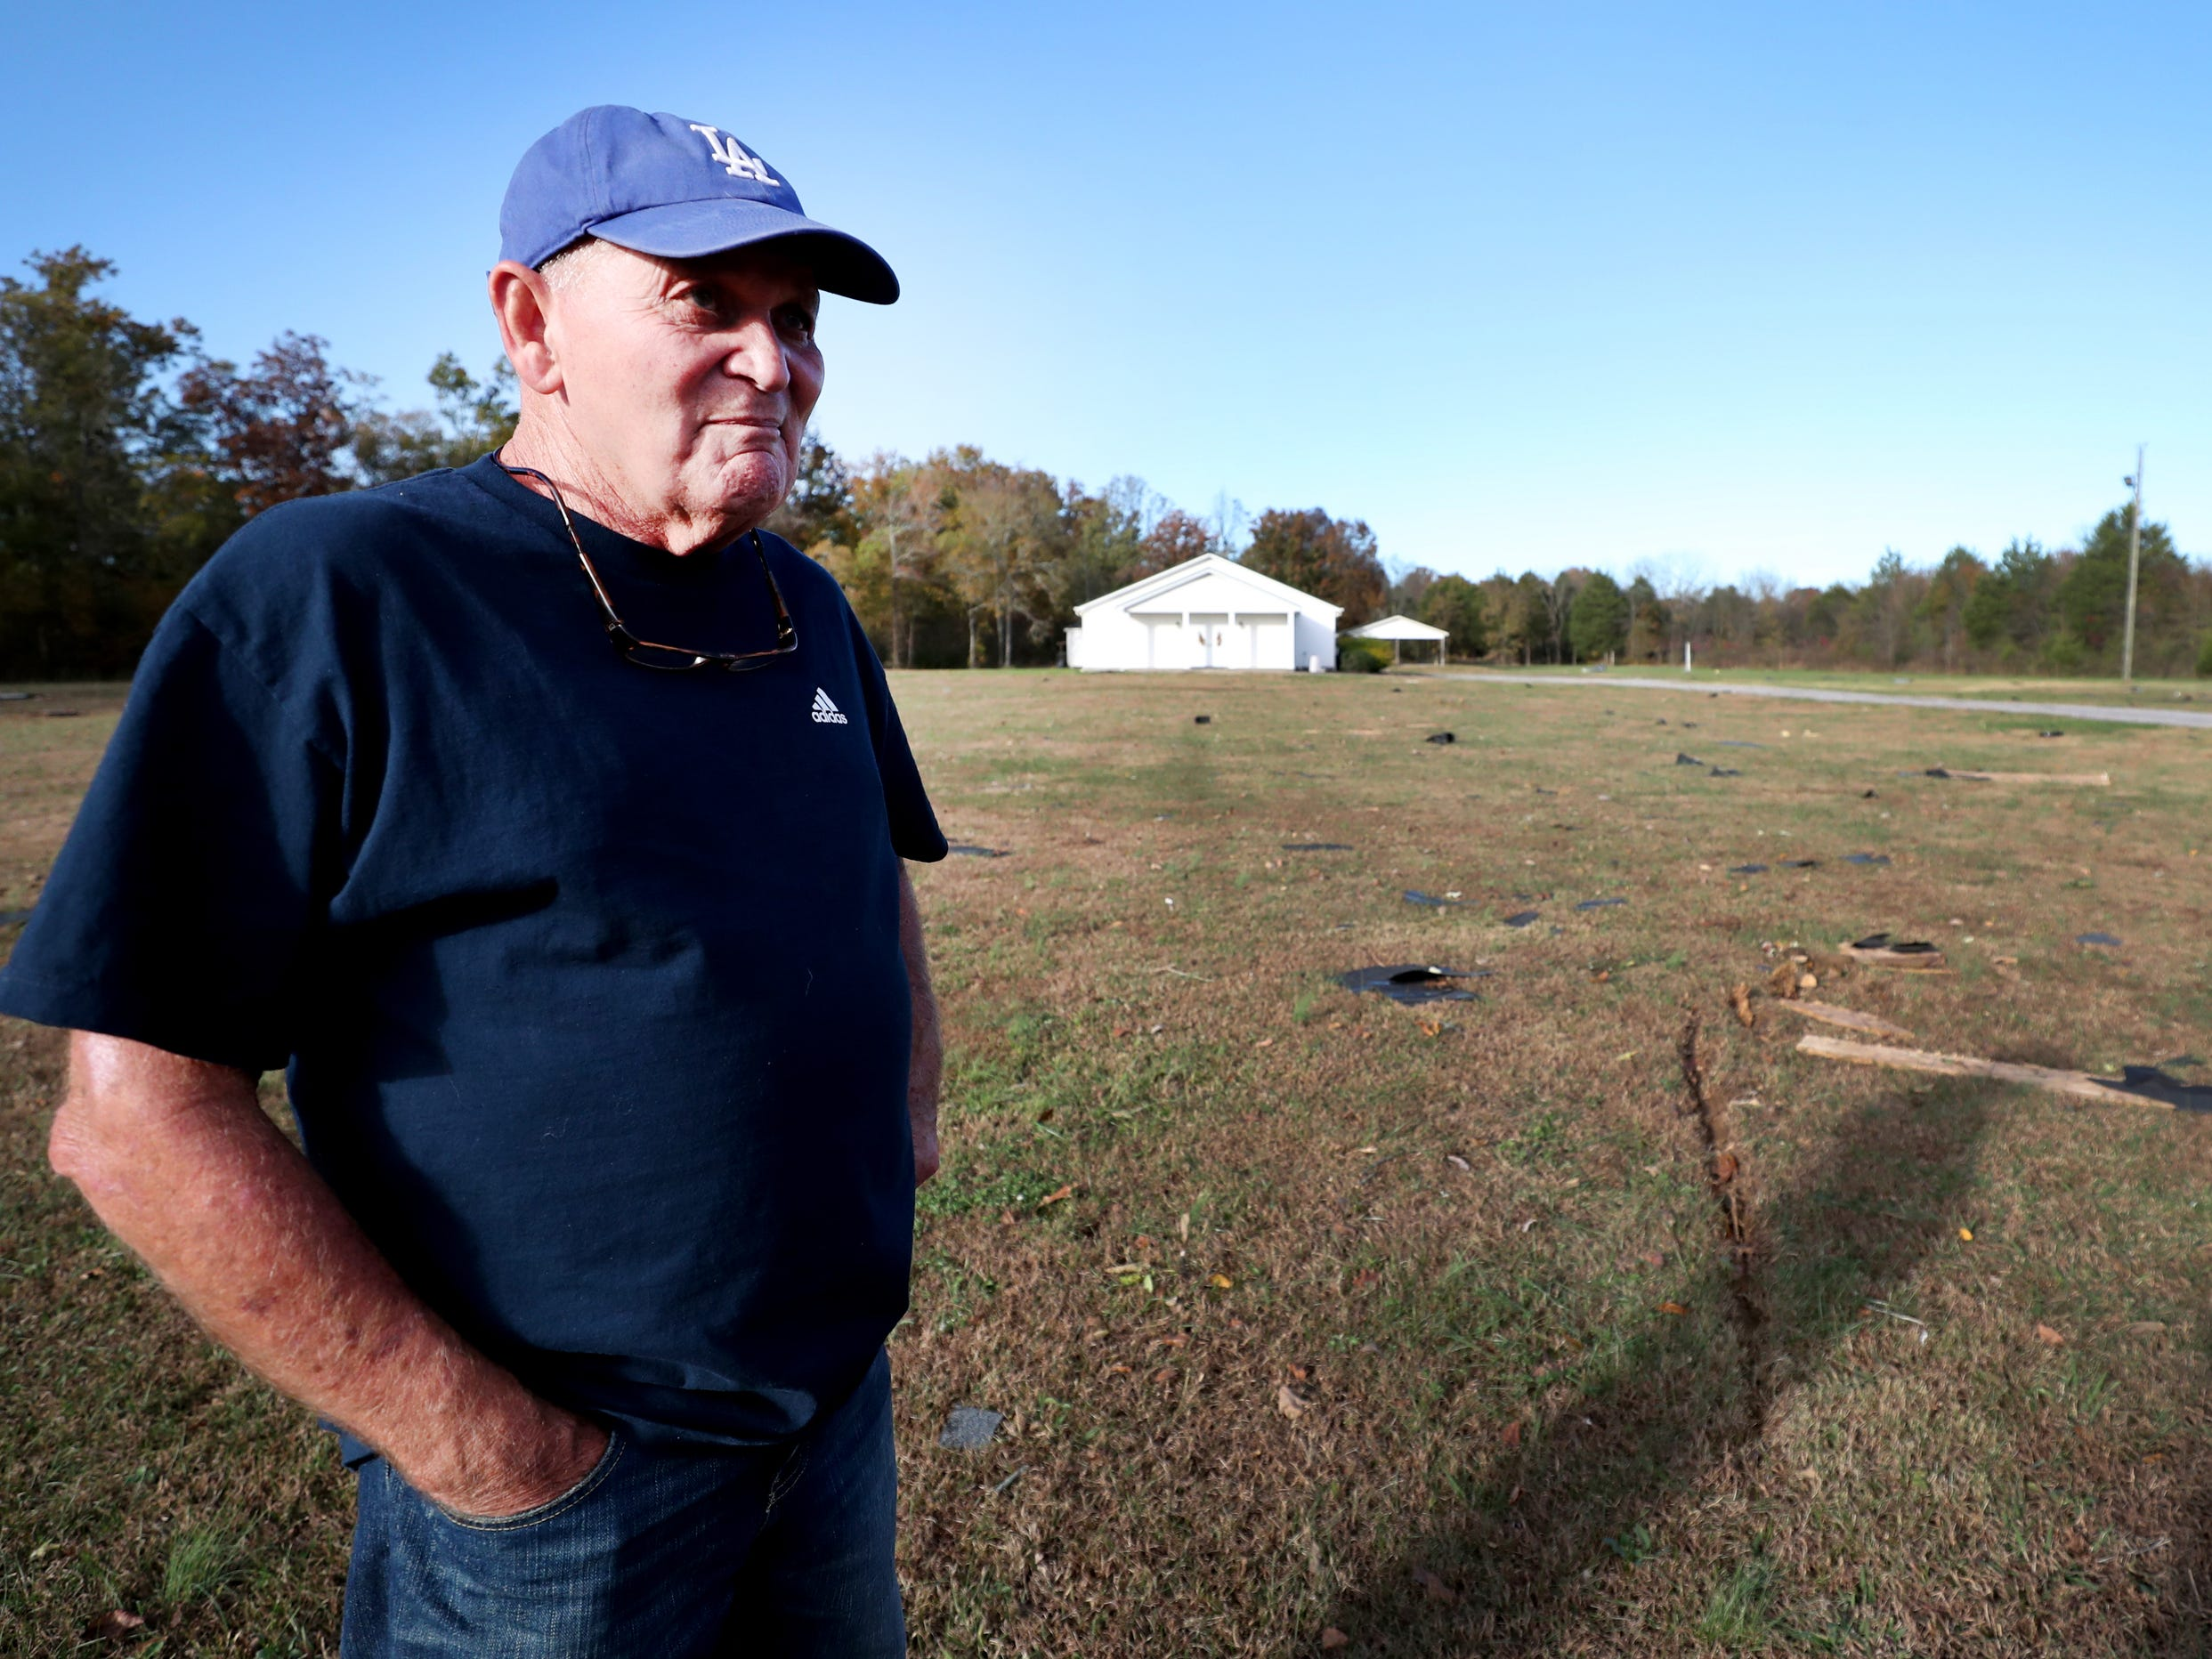 Billy Grimes Sr. looks for his friend's items that might have blown into the yard of the South Boros Pentecostals Church following a tornado that occurred  overnight, on Rock Springs Midland Road in Christiana, Tenn. on Tuesday, Nov. 6, 2018.